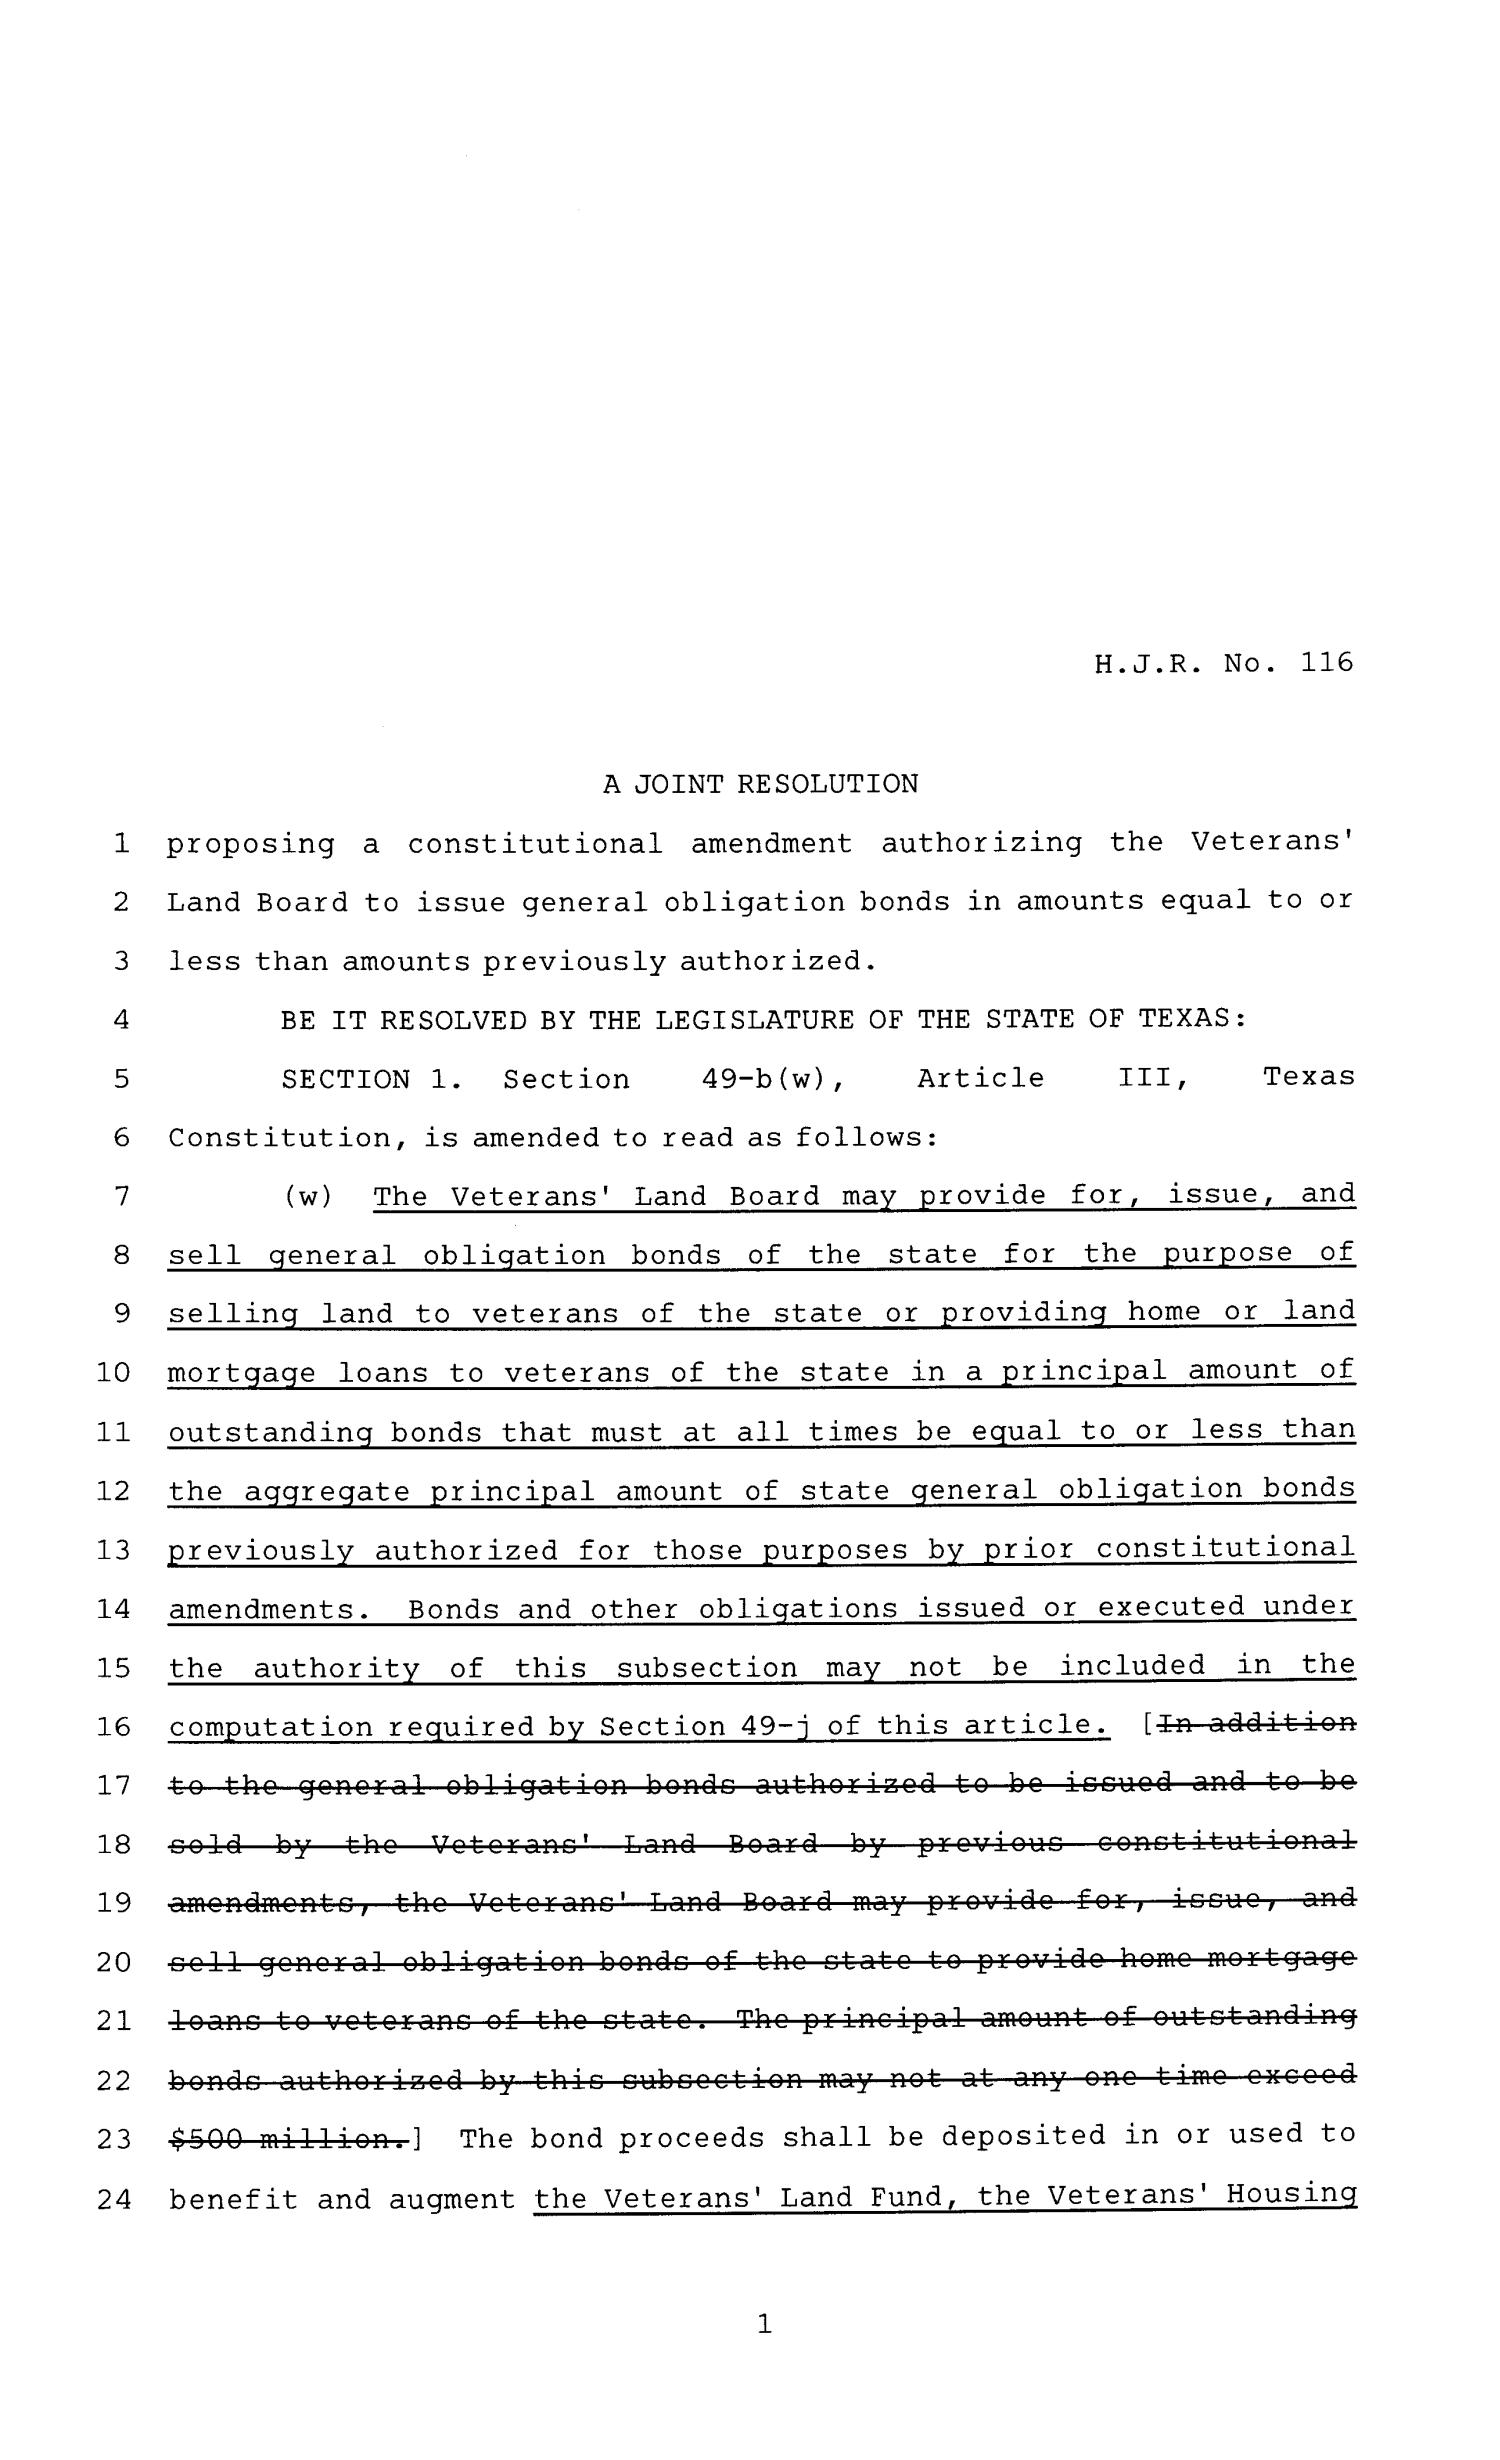 81st Texas Legislature, House Joint Resolutions, House Bill 116                                                                                                      [Sequence #]: 1 of 3